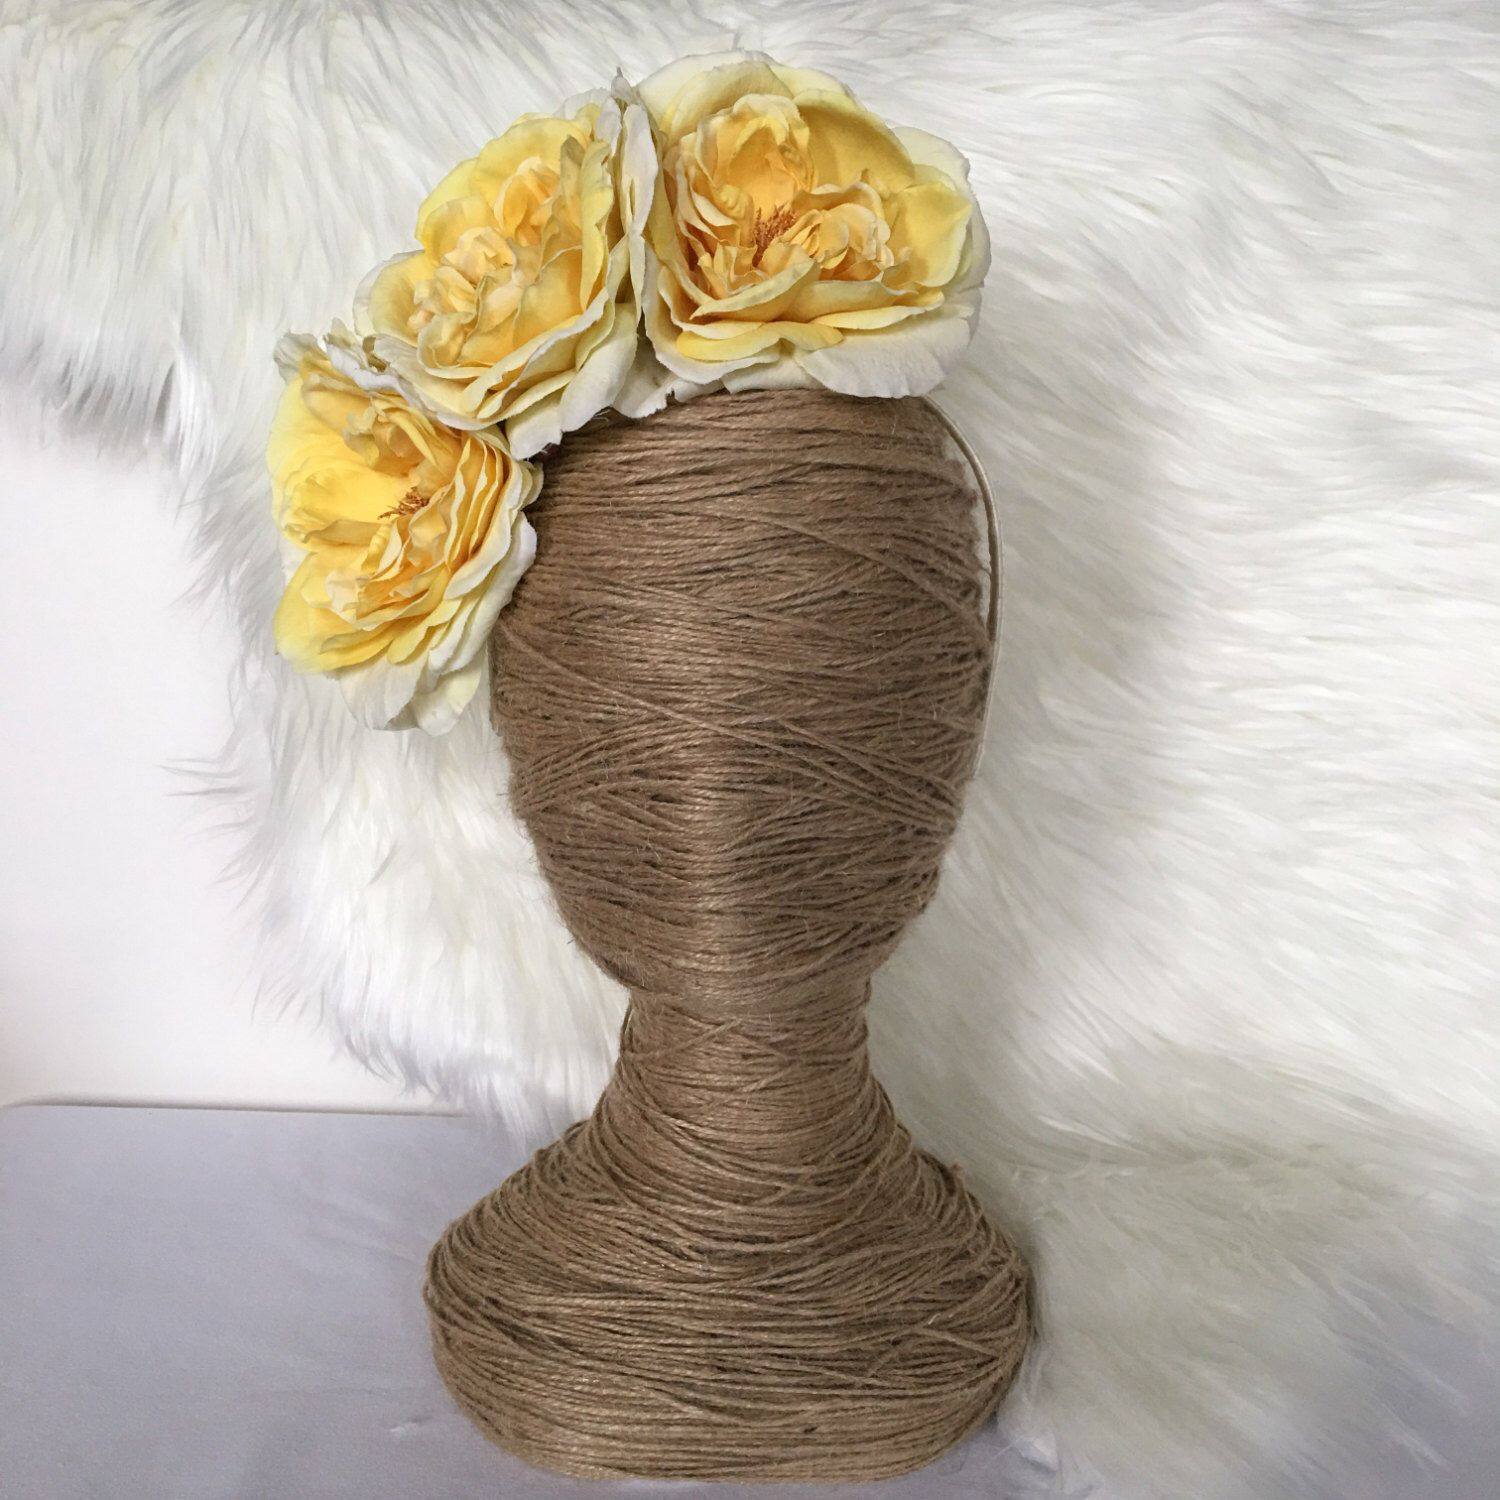 Oversized Lemon Yellow Cabbage Rose Bloom / Floral Wreath / Artificial / Hair Flowers / Bride  / Fake Flower / Silk / Fascinator / Headband by FauxFloralCo on Etsy https://www.etsy.com/au/listing/480257959/oversized-lemon-yellow-cabbage-rose